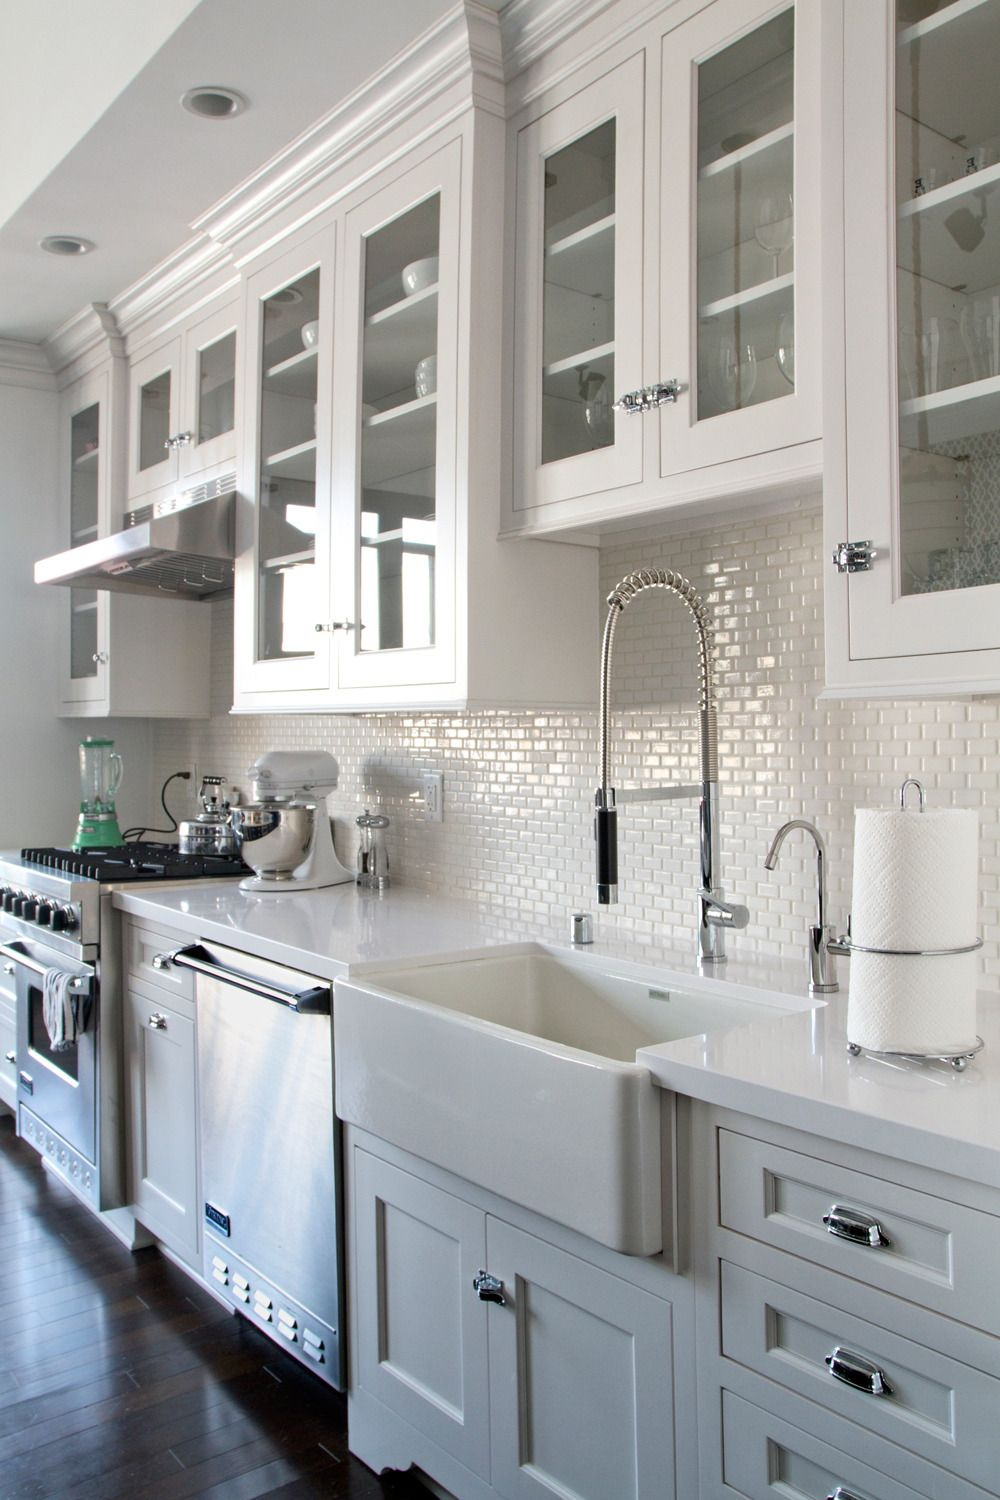 BETHANY NAUERT PHOTOGRAPHER — Daniel Lowe\'s kitchen is a dream come ...